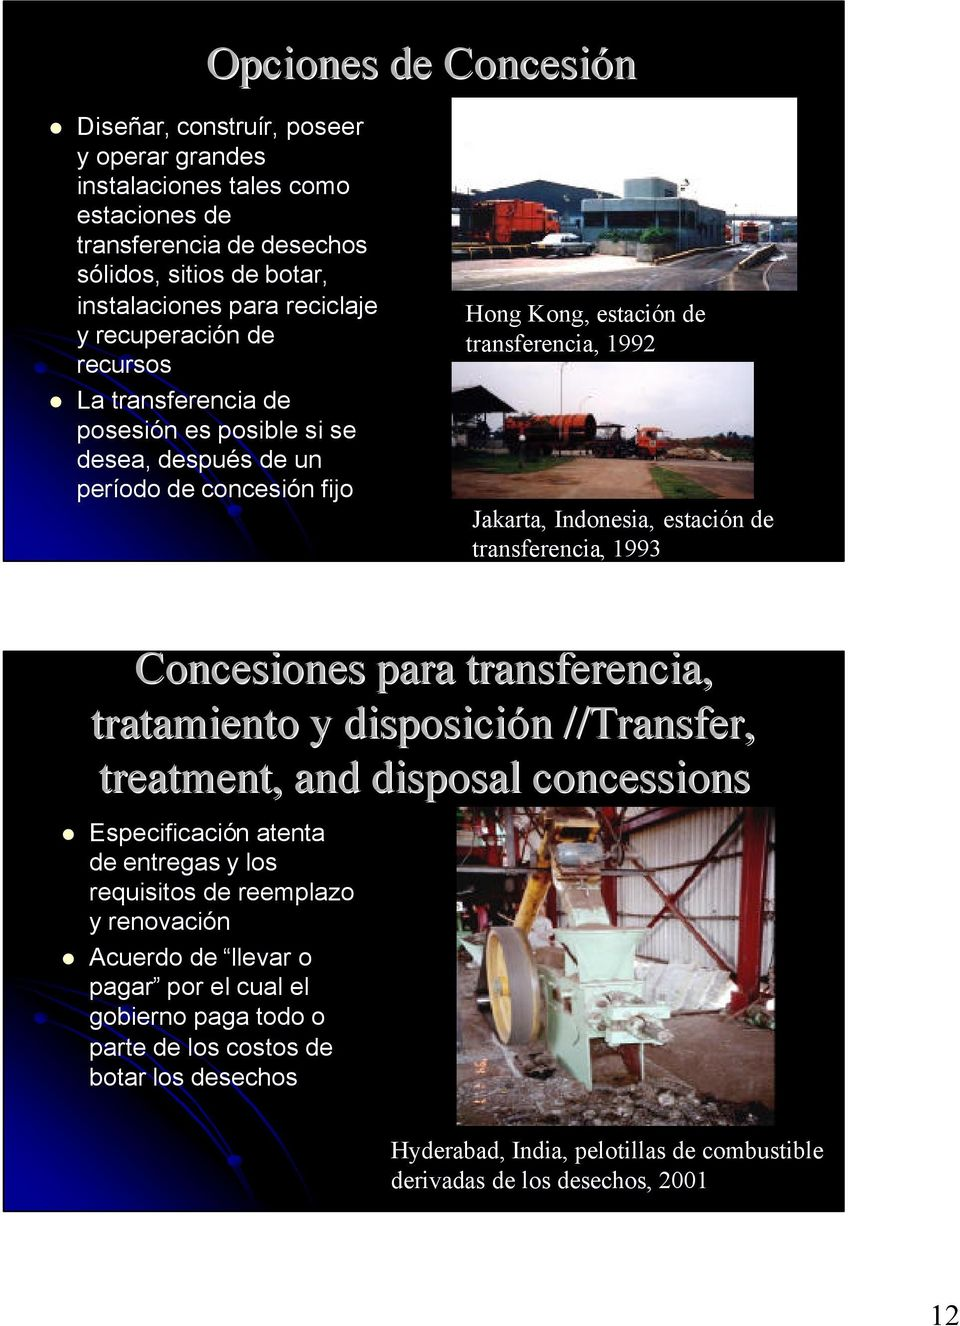 de transferencia, 1993 Concesiones para transferencia, tratamiento y disposición n //Transfer, treatment, and disposal concessions Especificación atenta de entregas y los requisitos de